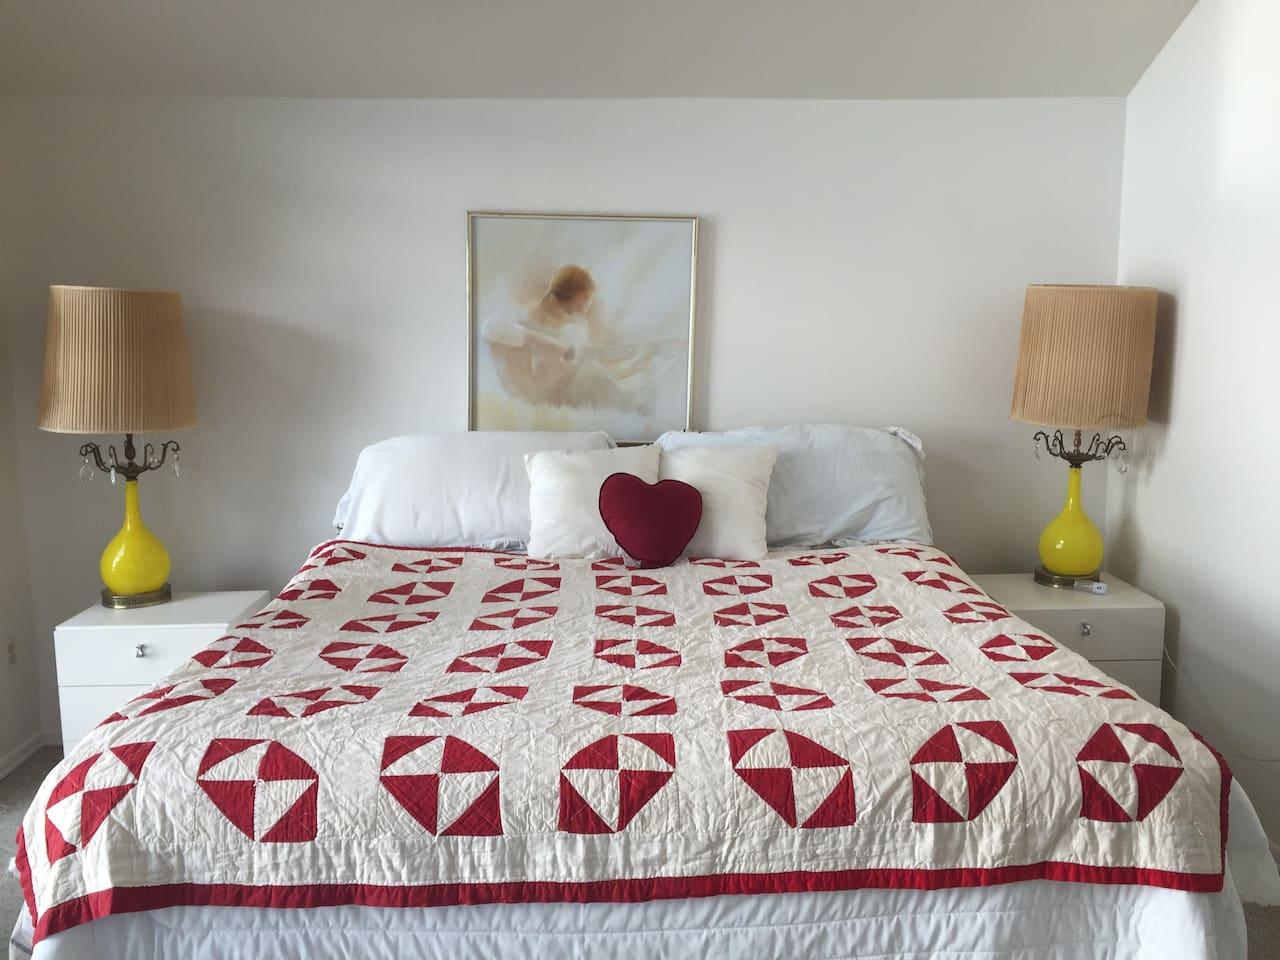 Request your Master bedroom bedspread!